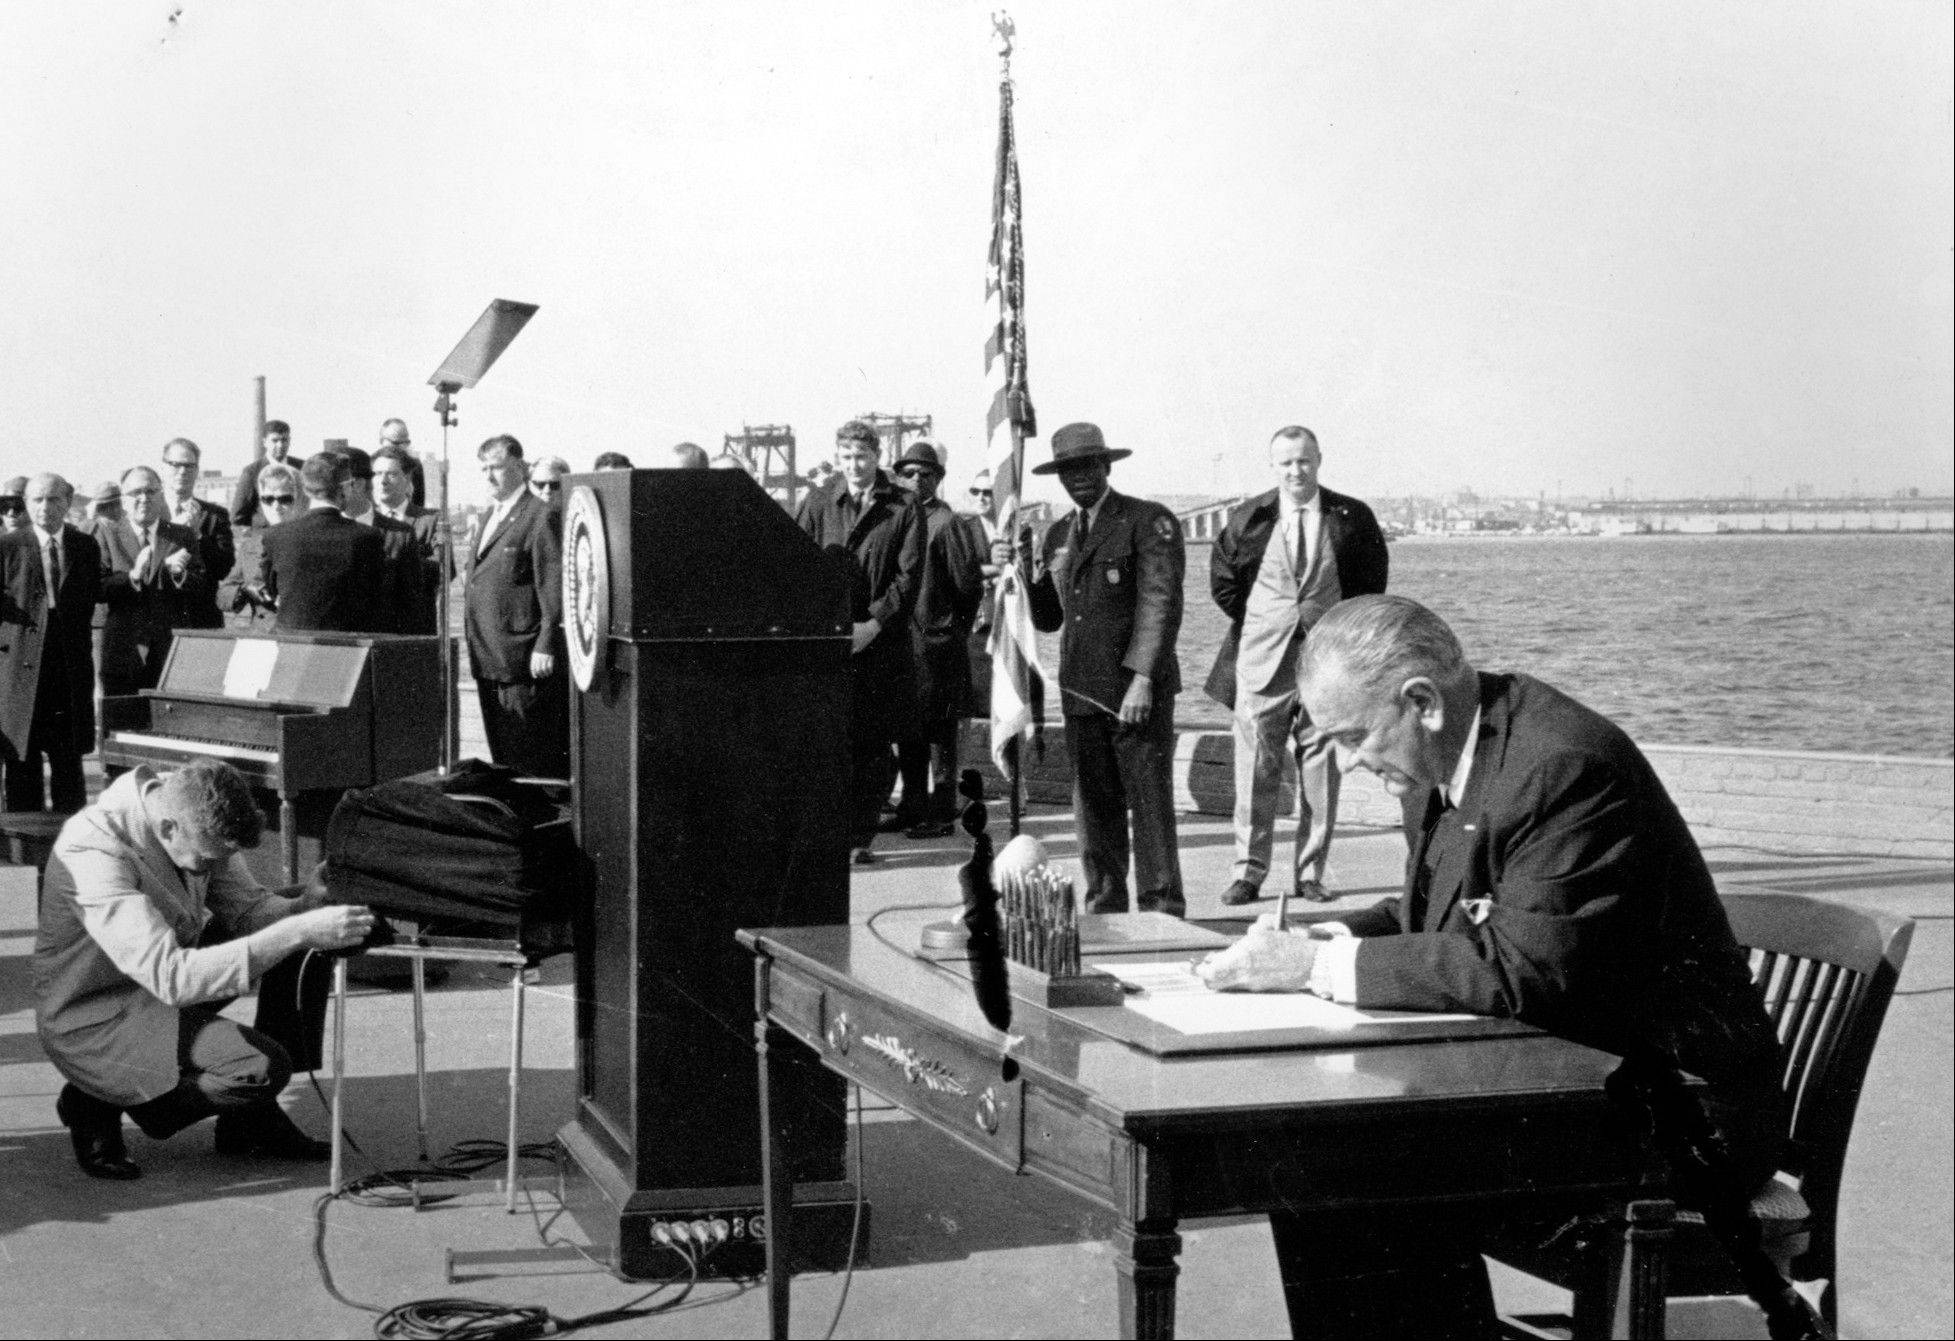 On Oct. 3, 1965, U.S. President Lyndon B. Johnson sat at his desk on Liberty Island in New York Harbor as he signed a new immigration bill. It was in 1965 that the U.S. government radically changed its immigration policy, and planted the seeds for America's current demographic explosion, a shift that historians say happened in part because of a hunger for change and equality created by the civil rights movement.